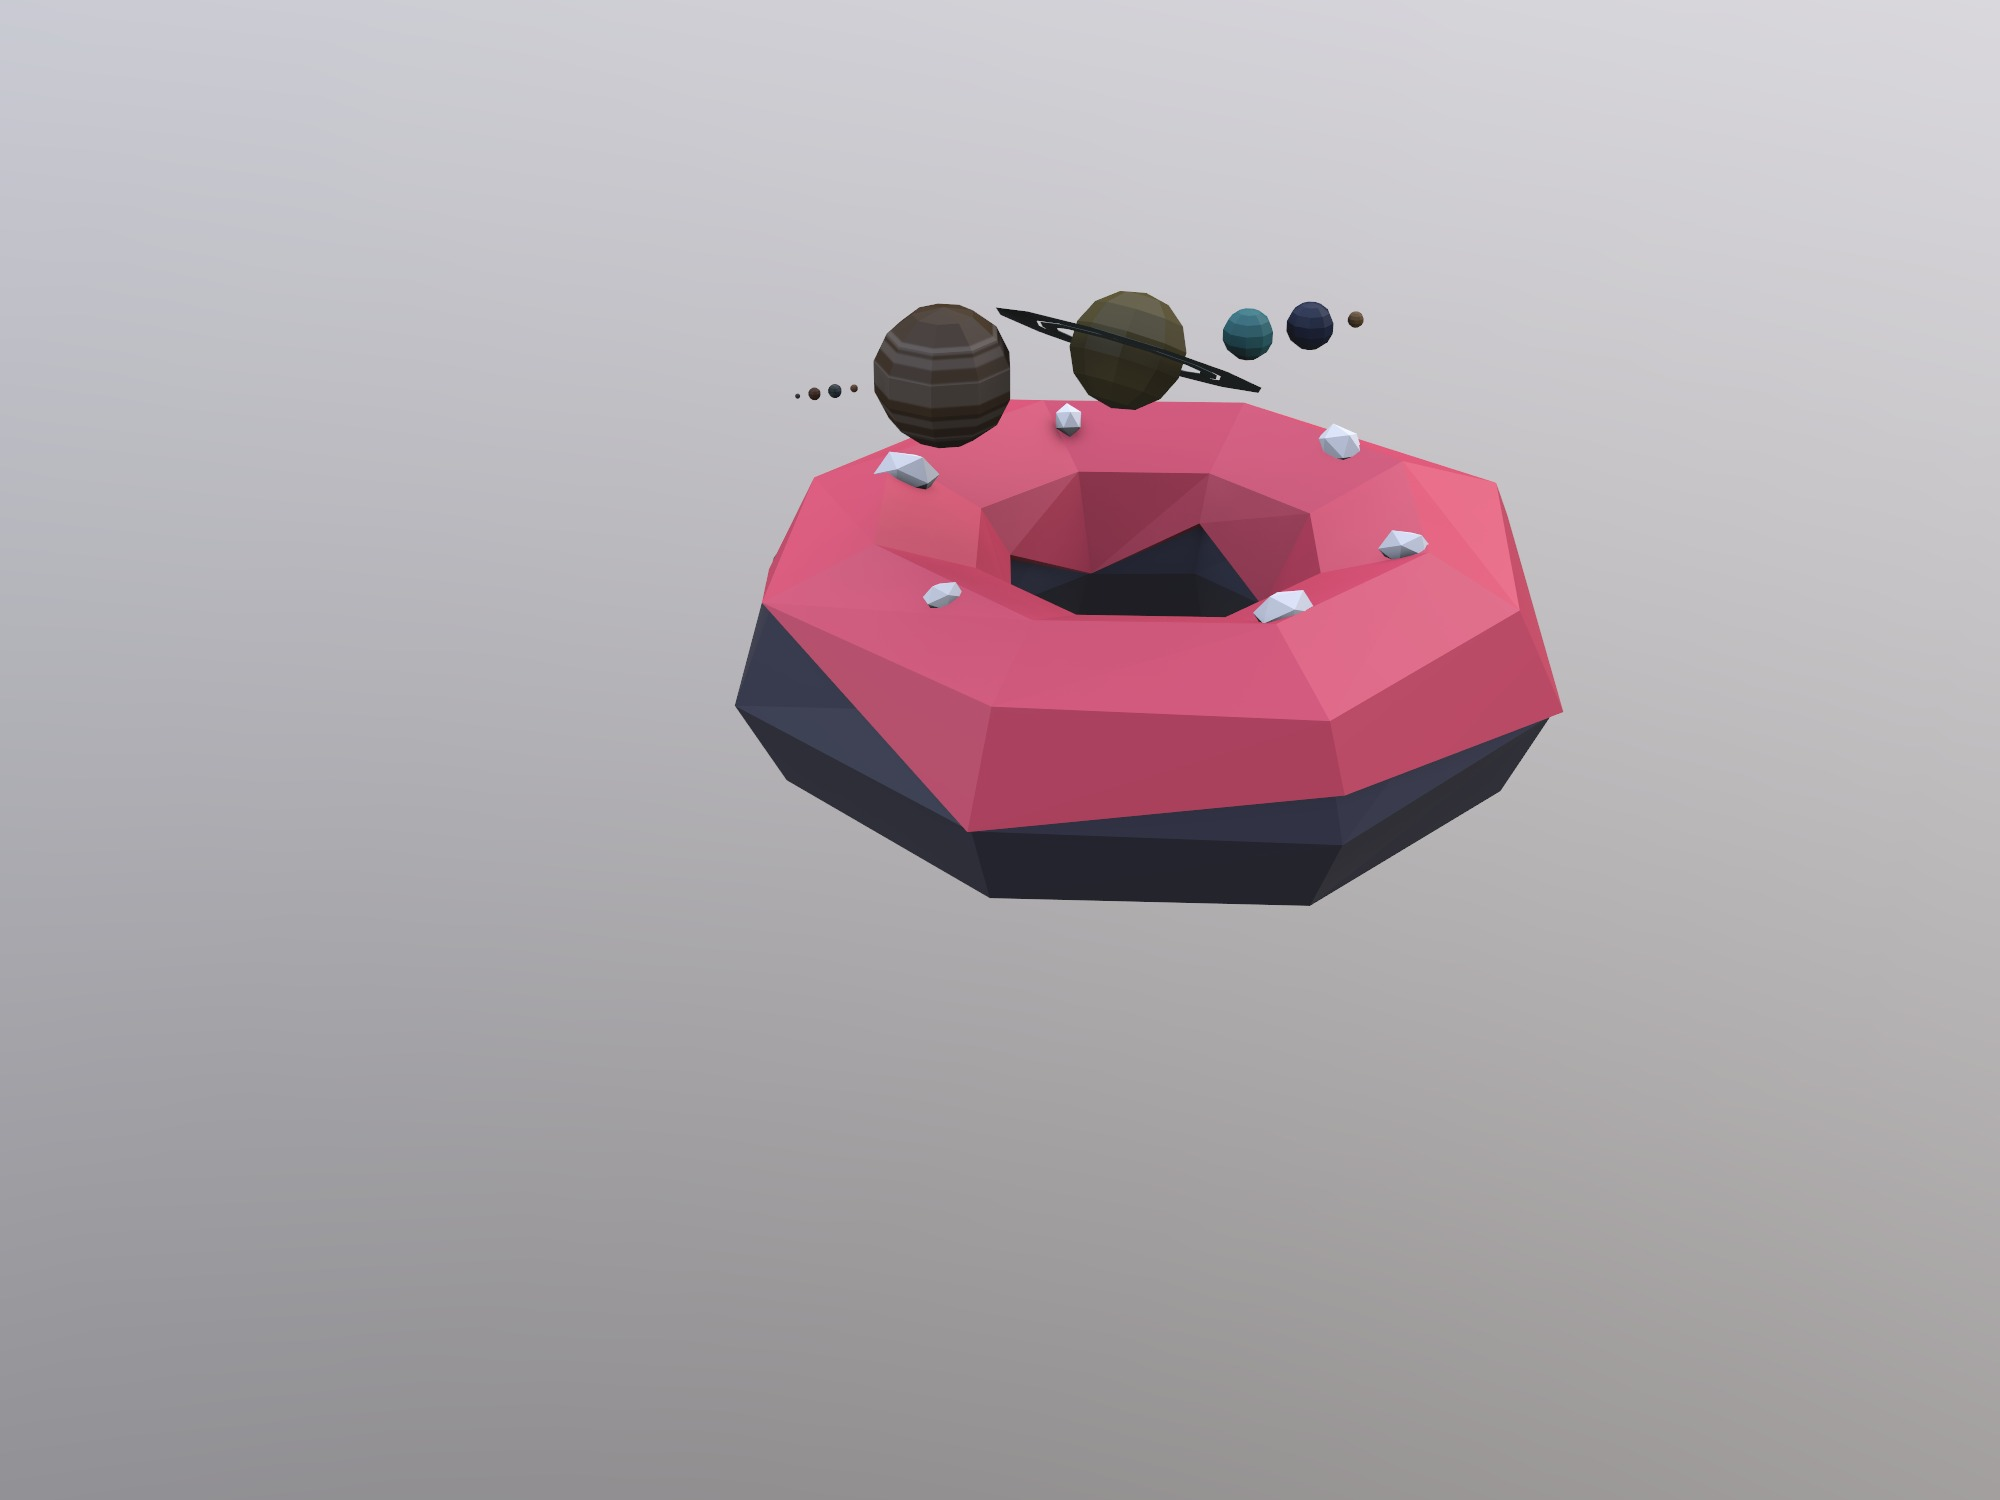 ponczek planetarny (copy) - 3D design by Michał Knurowski on Dec 17, 2018